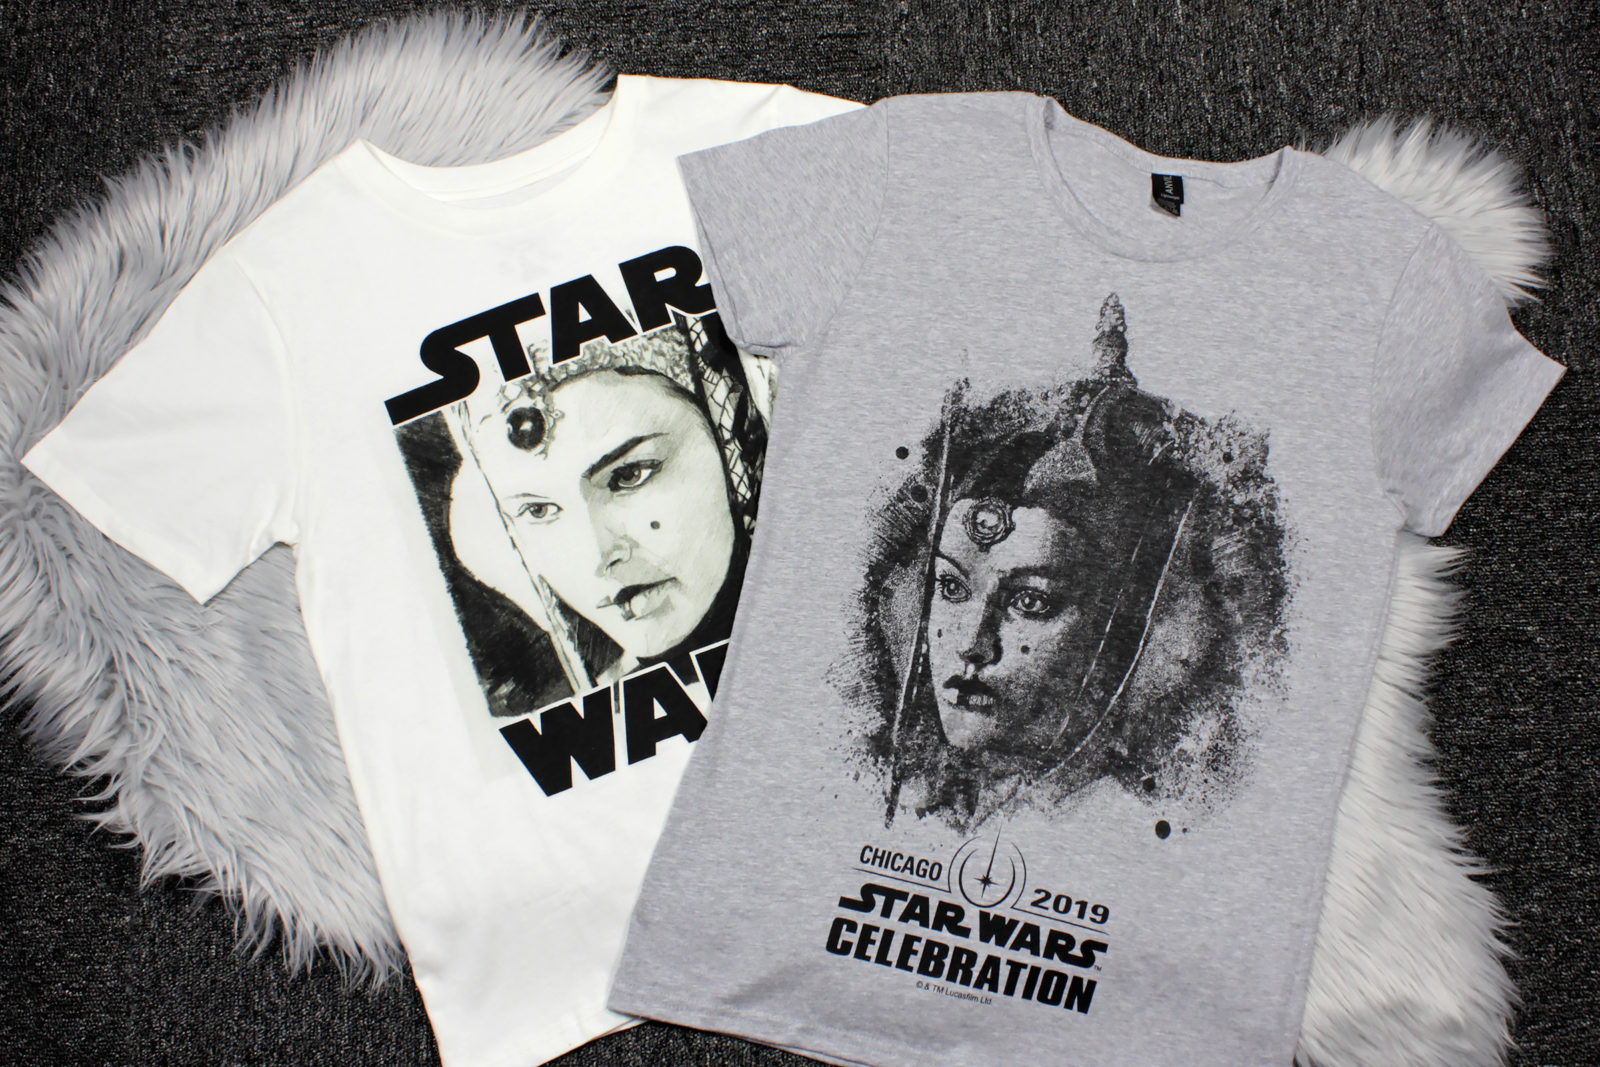 Star Wars The Phantom Menace Queen Amidala T-Shirts from Forever 21 and Star Wars Celebration Chicago